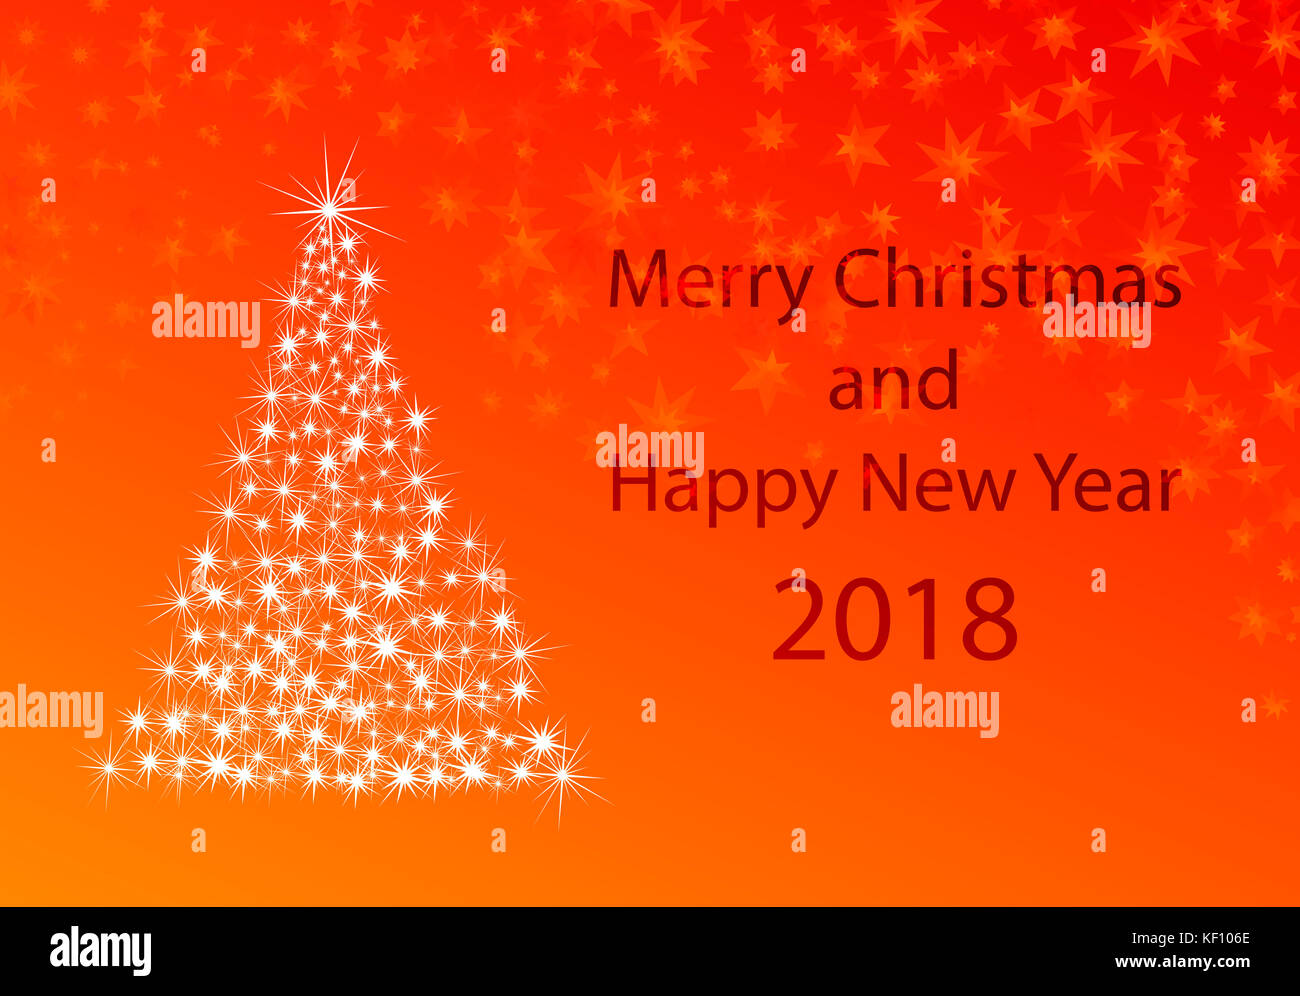 2018 card stock photos 2018 card stock images alamy xmas greeting card for new years 2018 stock image m4hsunfo